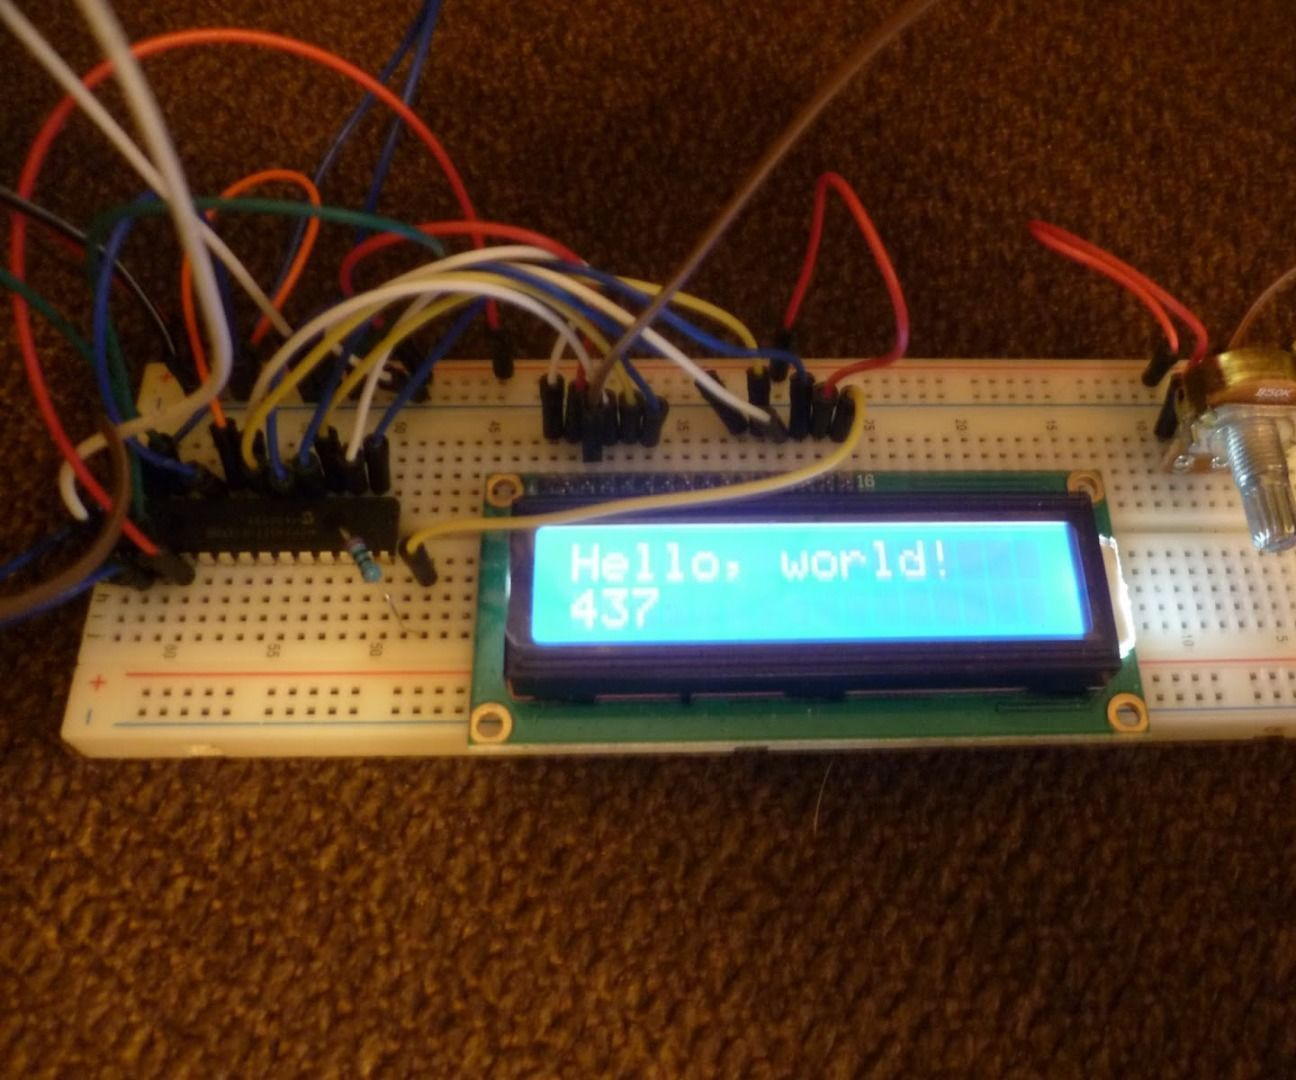 Diy I2c Lcd Display With Inputs Pinterest Arduino Cool Projects Electronics And Microcontrollers For Home Ham Radio Model Railroading More